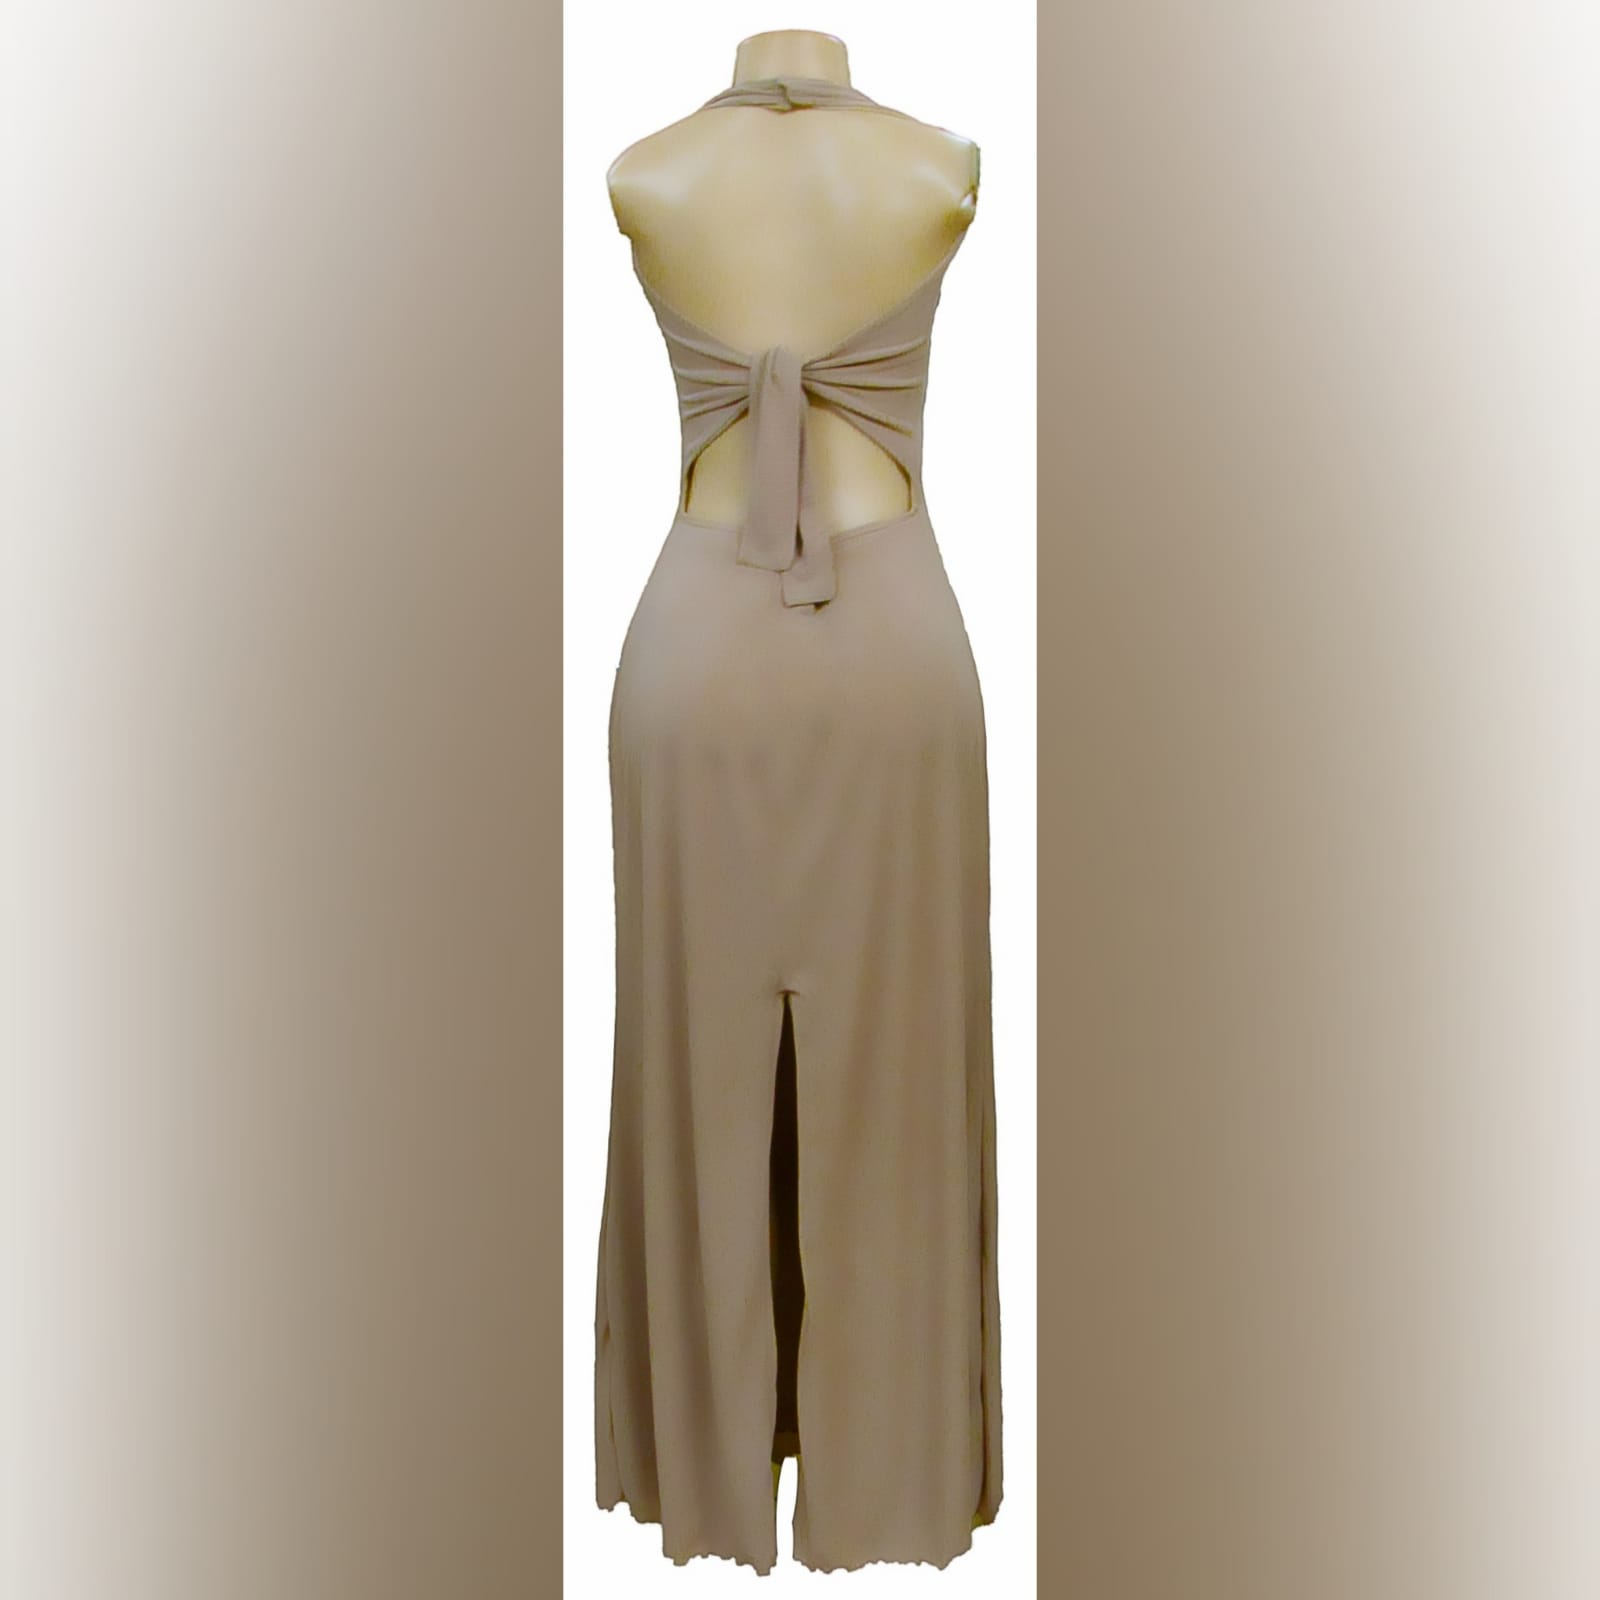 Long halter neck beige smart casual dress 2 long halter neck beige smart casual dress with a tie up open back and a back slit